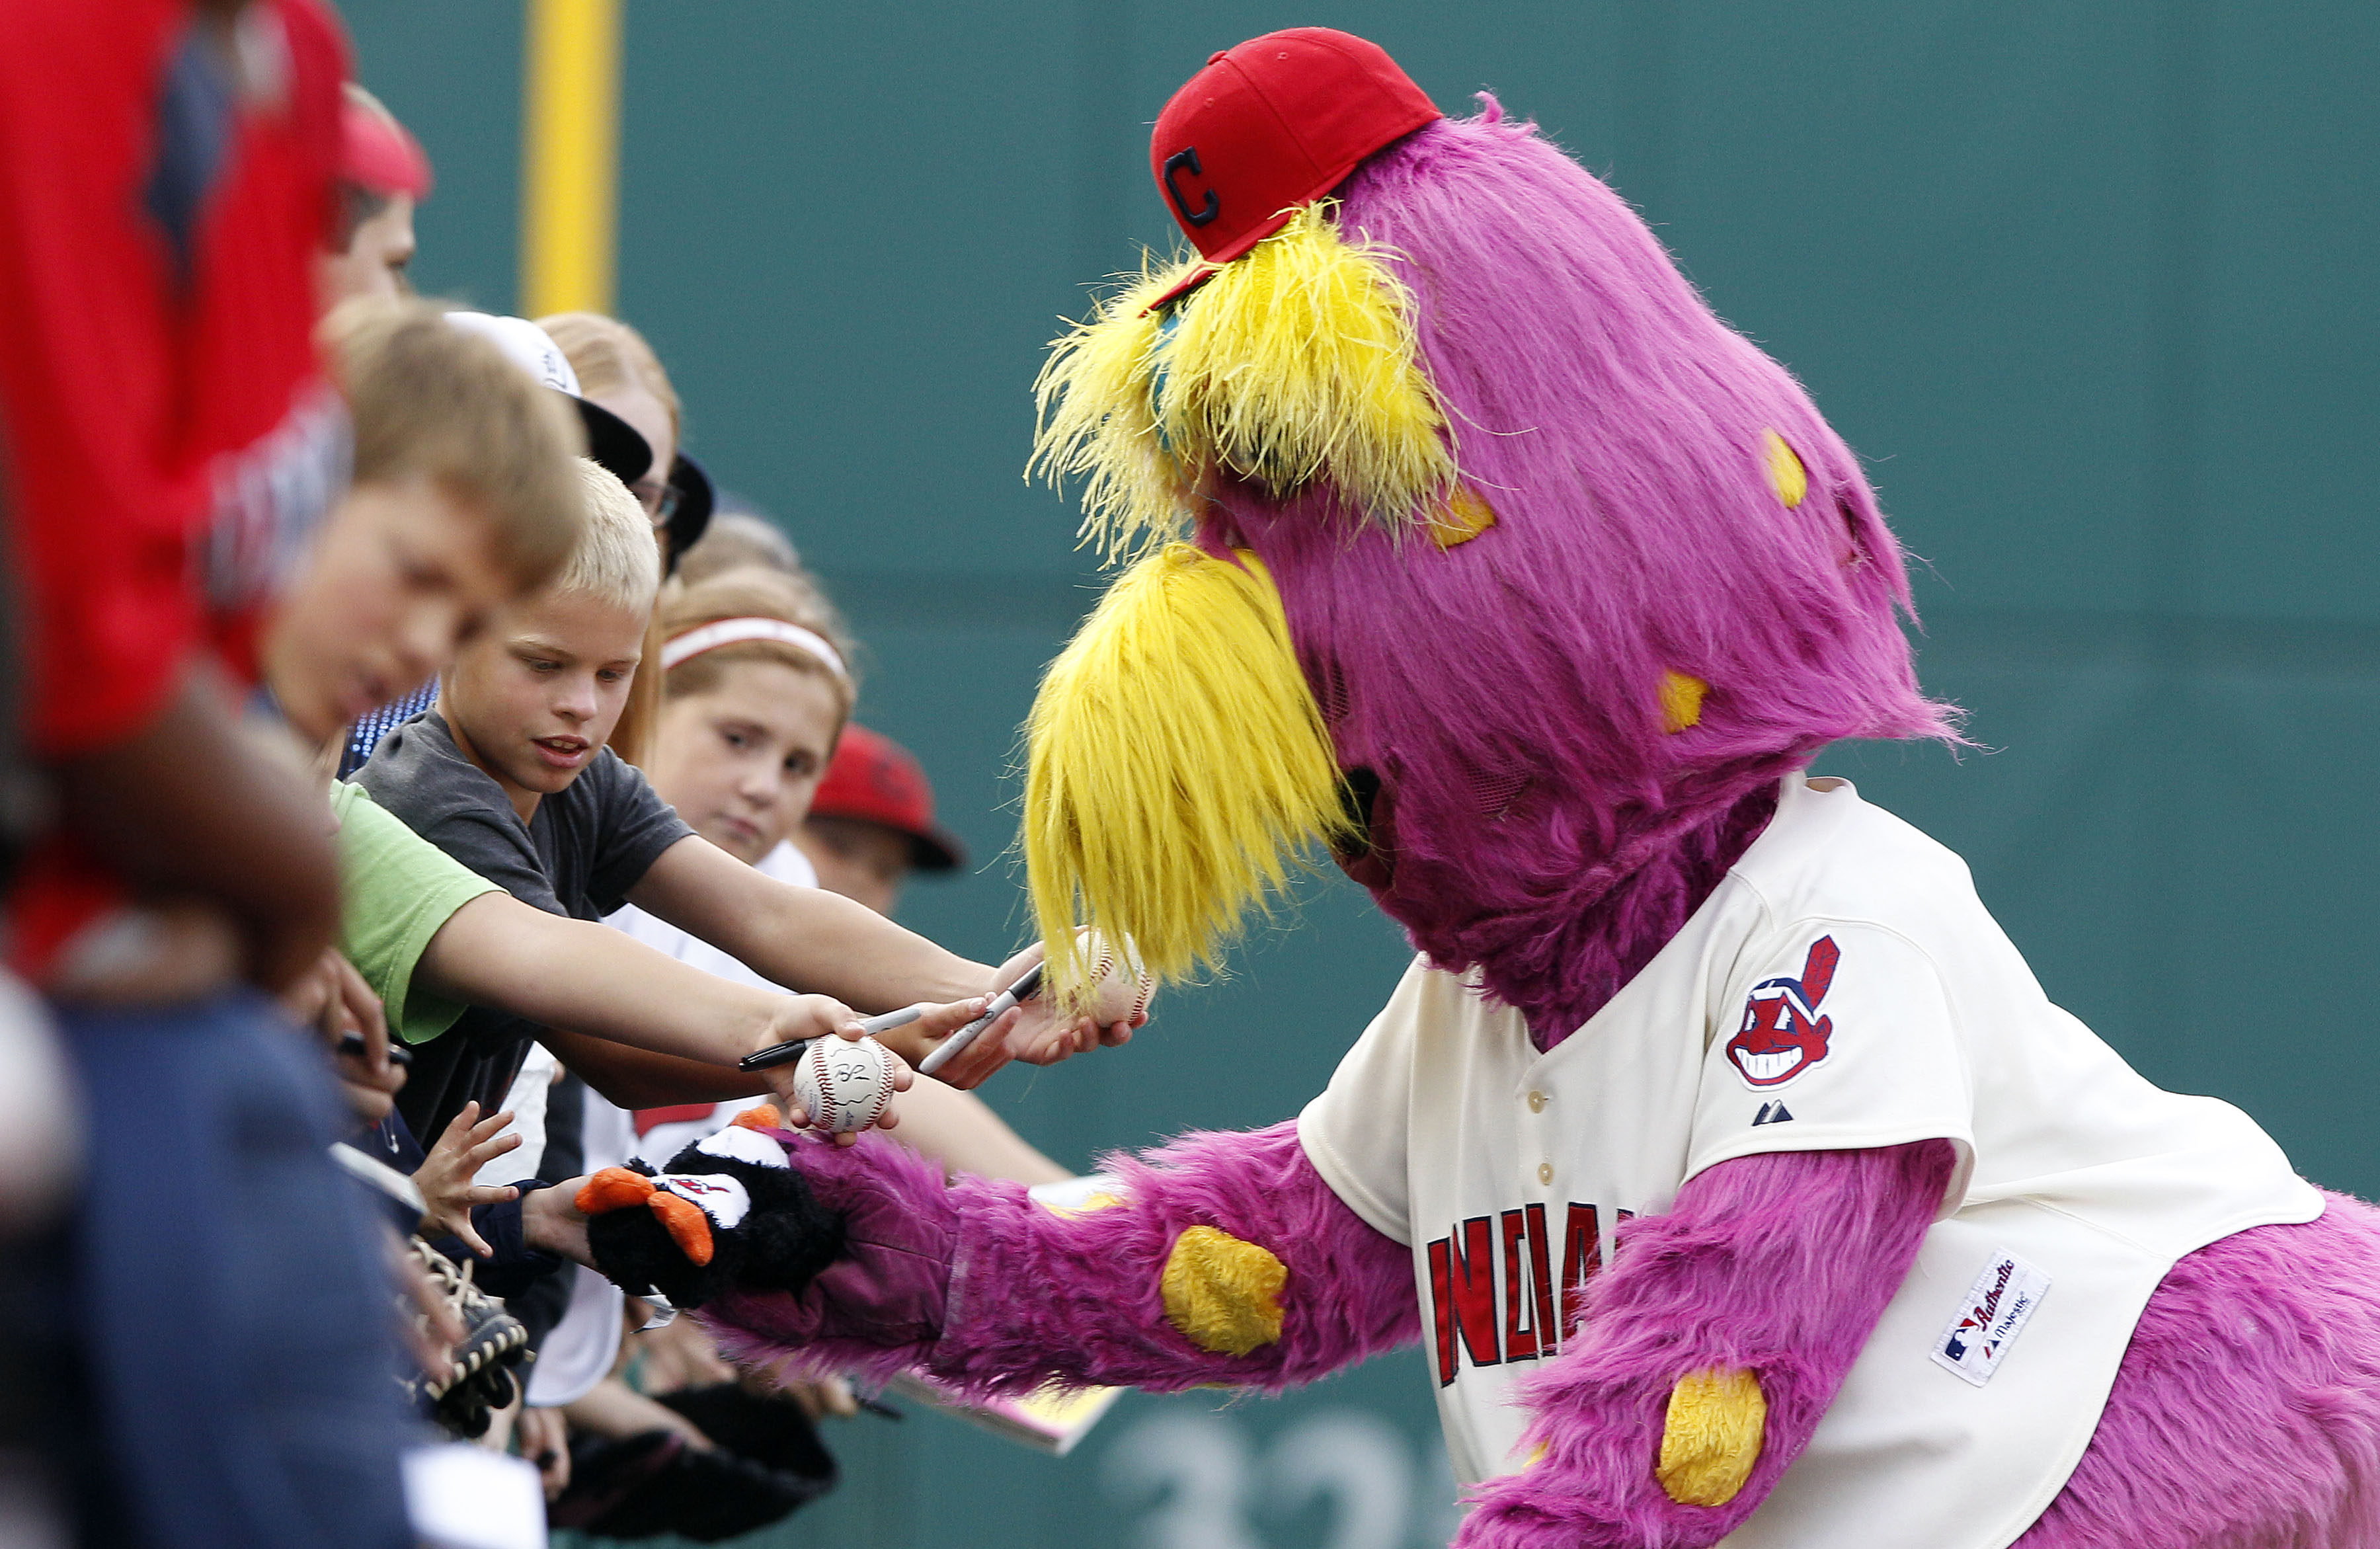 Slider looks like one of those STD muppets from Kneehigh Park